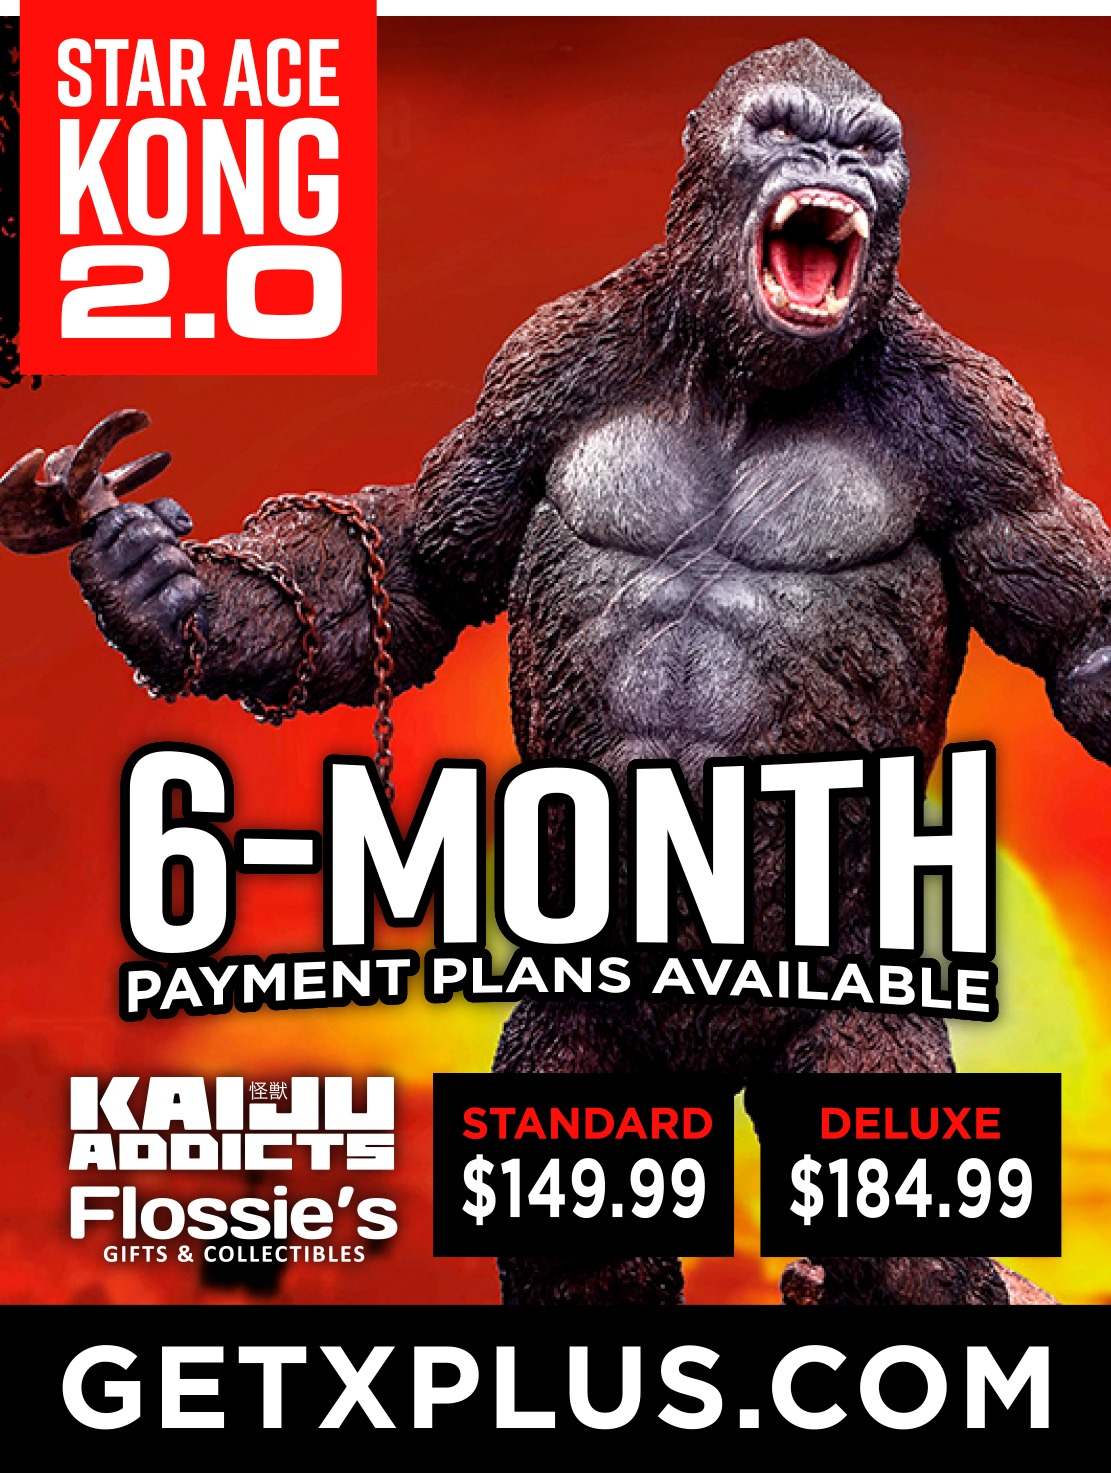 Star Ace (X-Plus) Kong 2.0 now up for preorder at Flossie's!